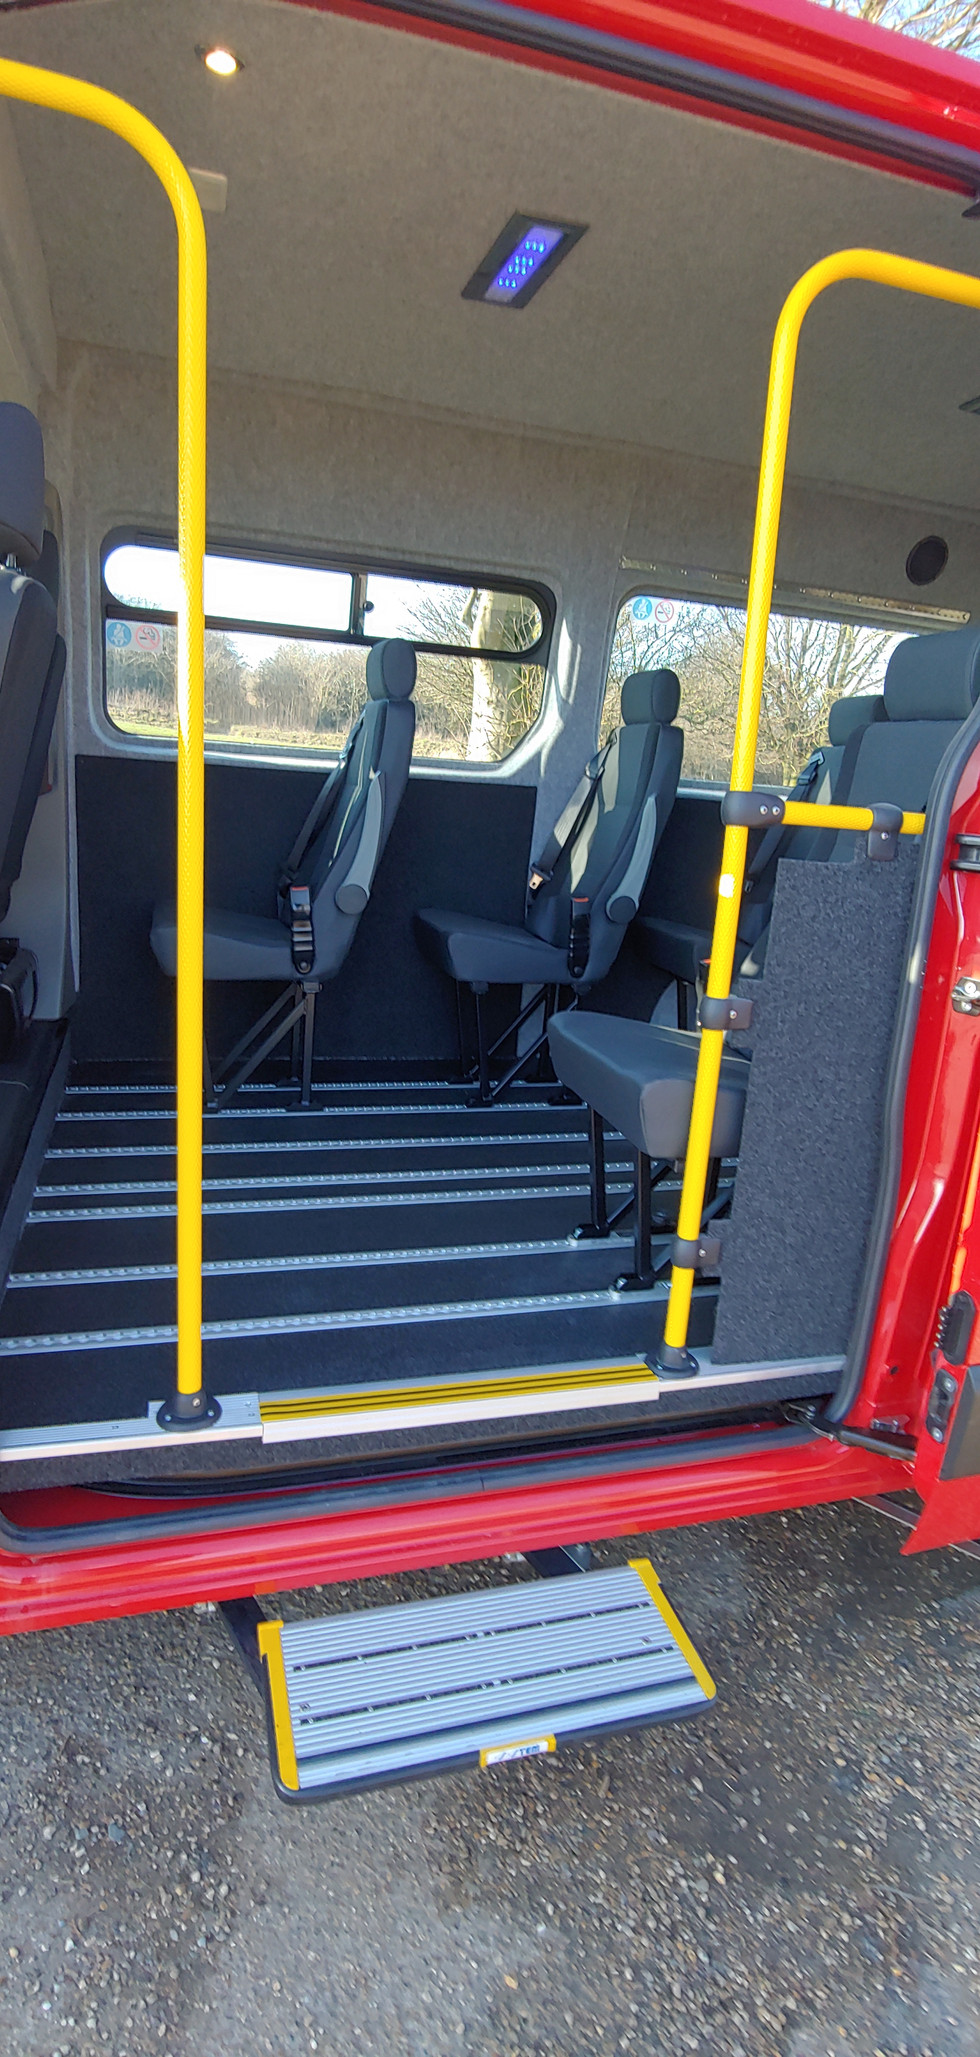 Dor operated step to Warnerbus conversion